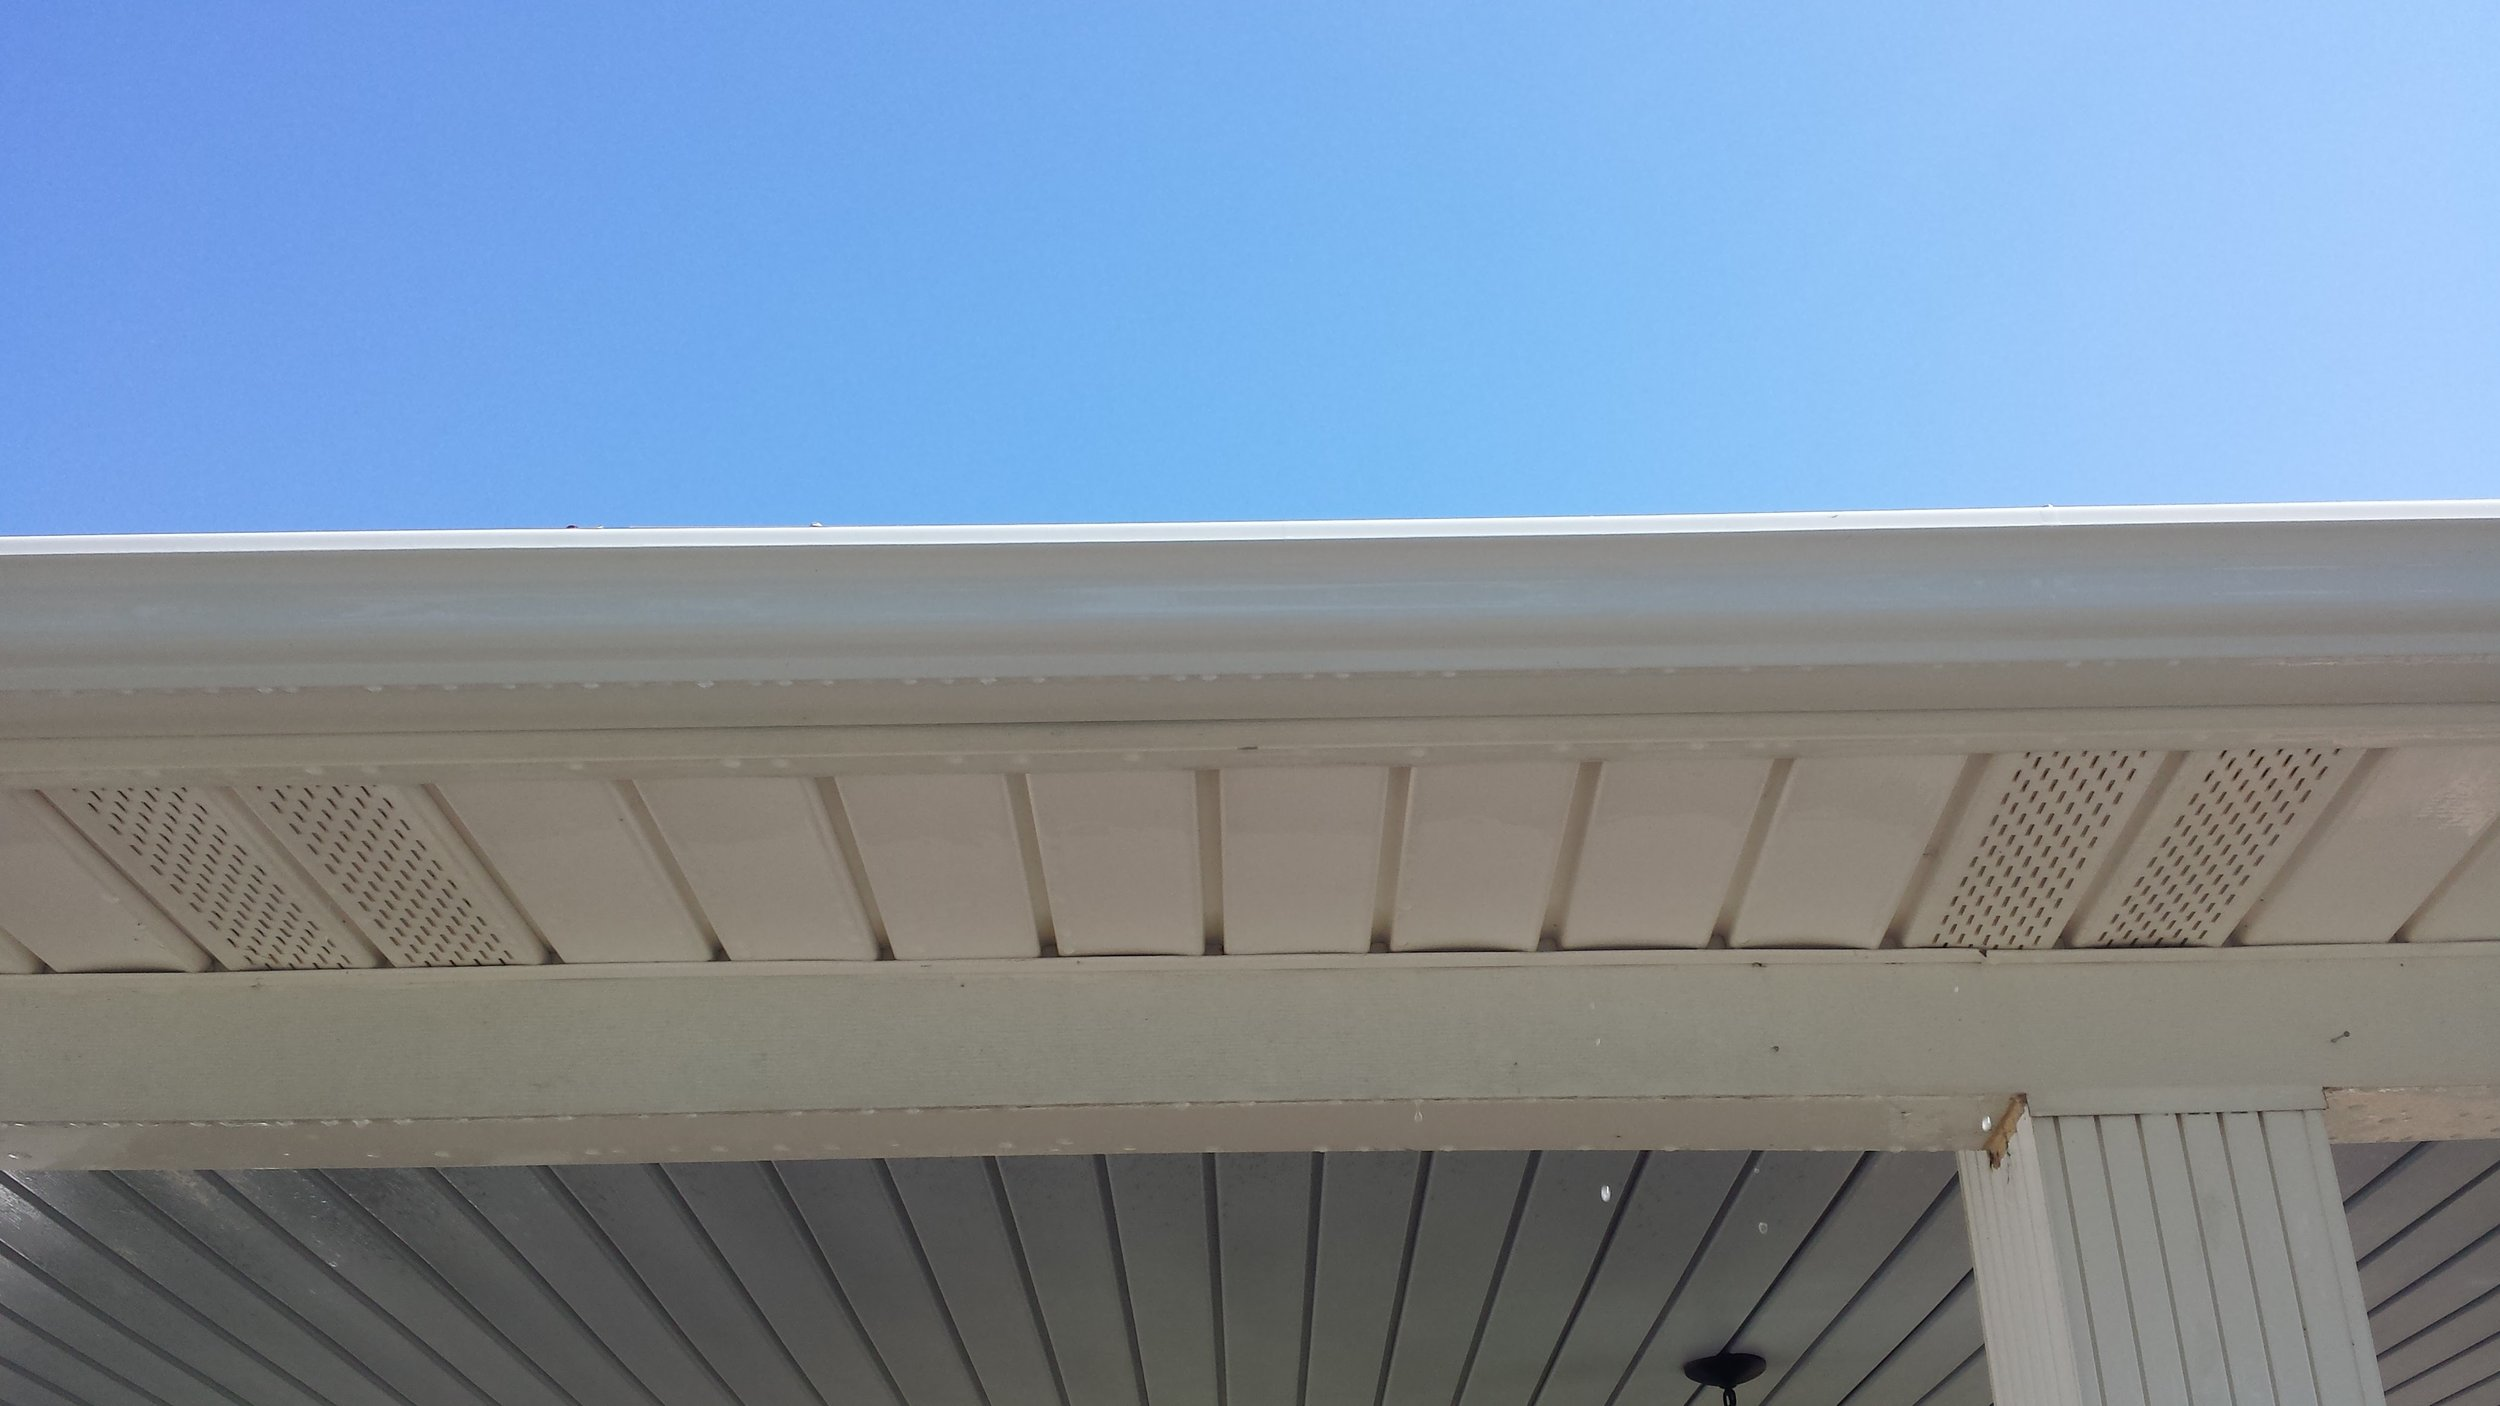 """Dark """"Tiger Stripes"""" - After. All clean!!! Looks new again. Gutter Cleaning in Lexington North Carolina."""